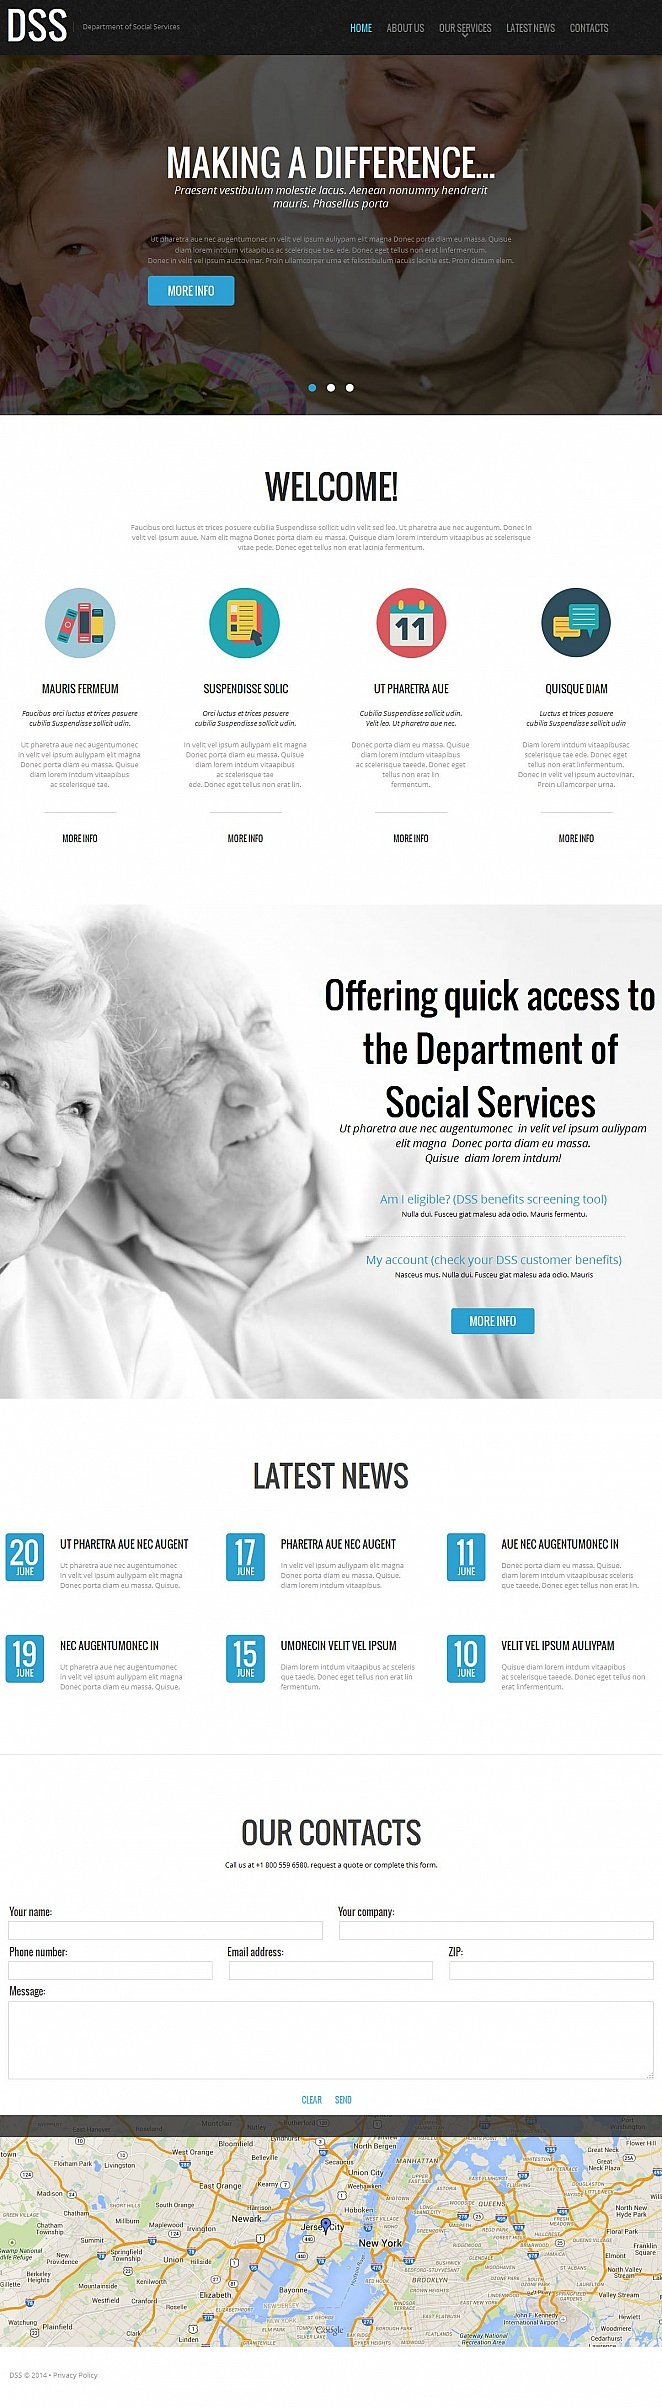 Social Services Website Template - image